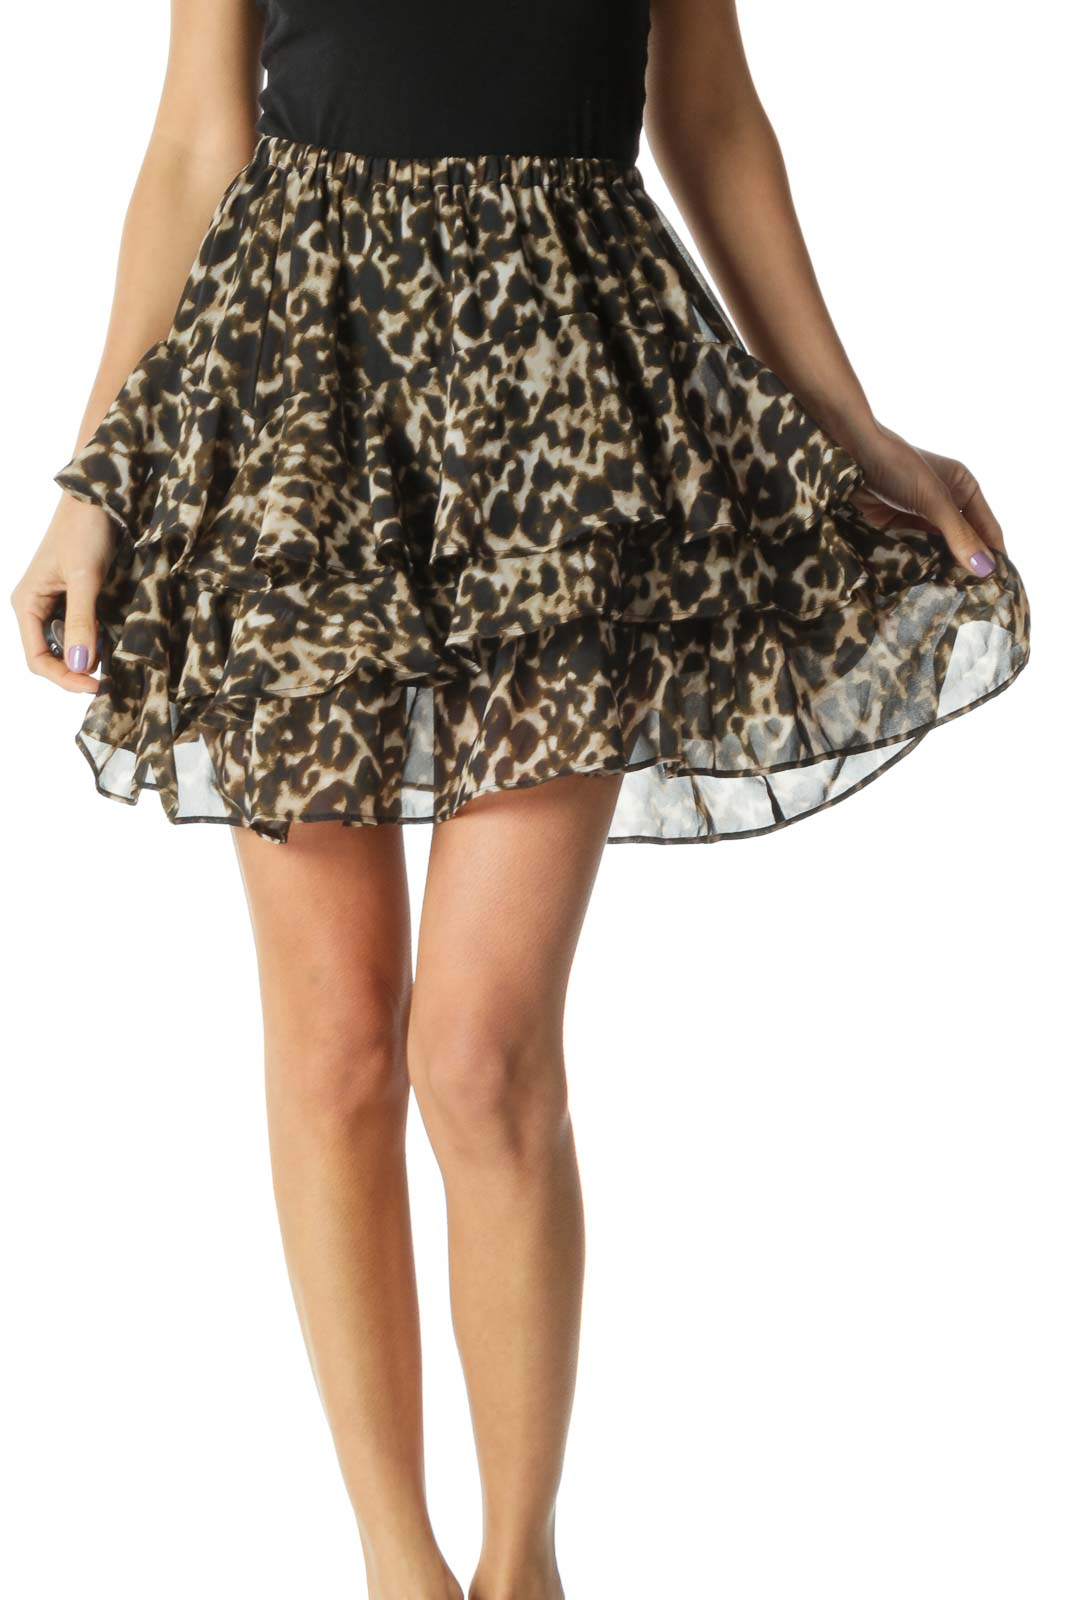 Black and Brown Cheetah Print Tiered Ruffled Flared Skirt Front